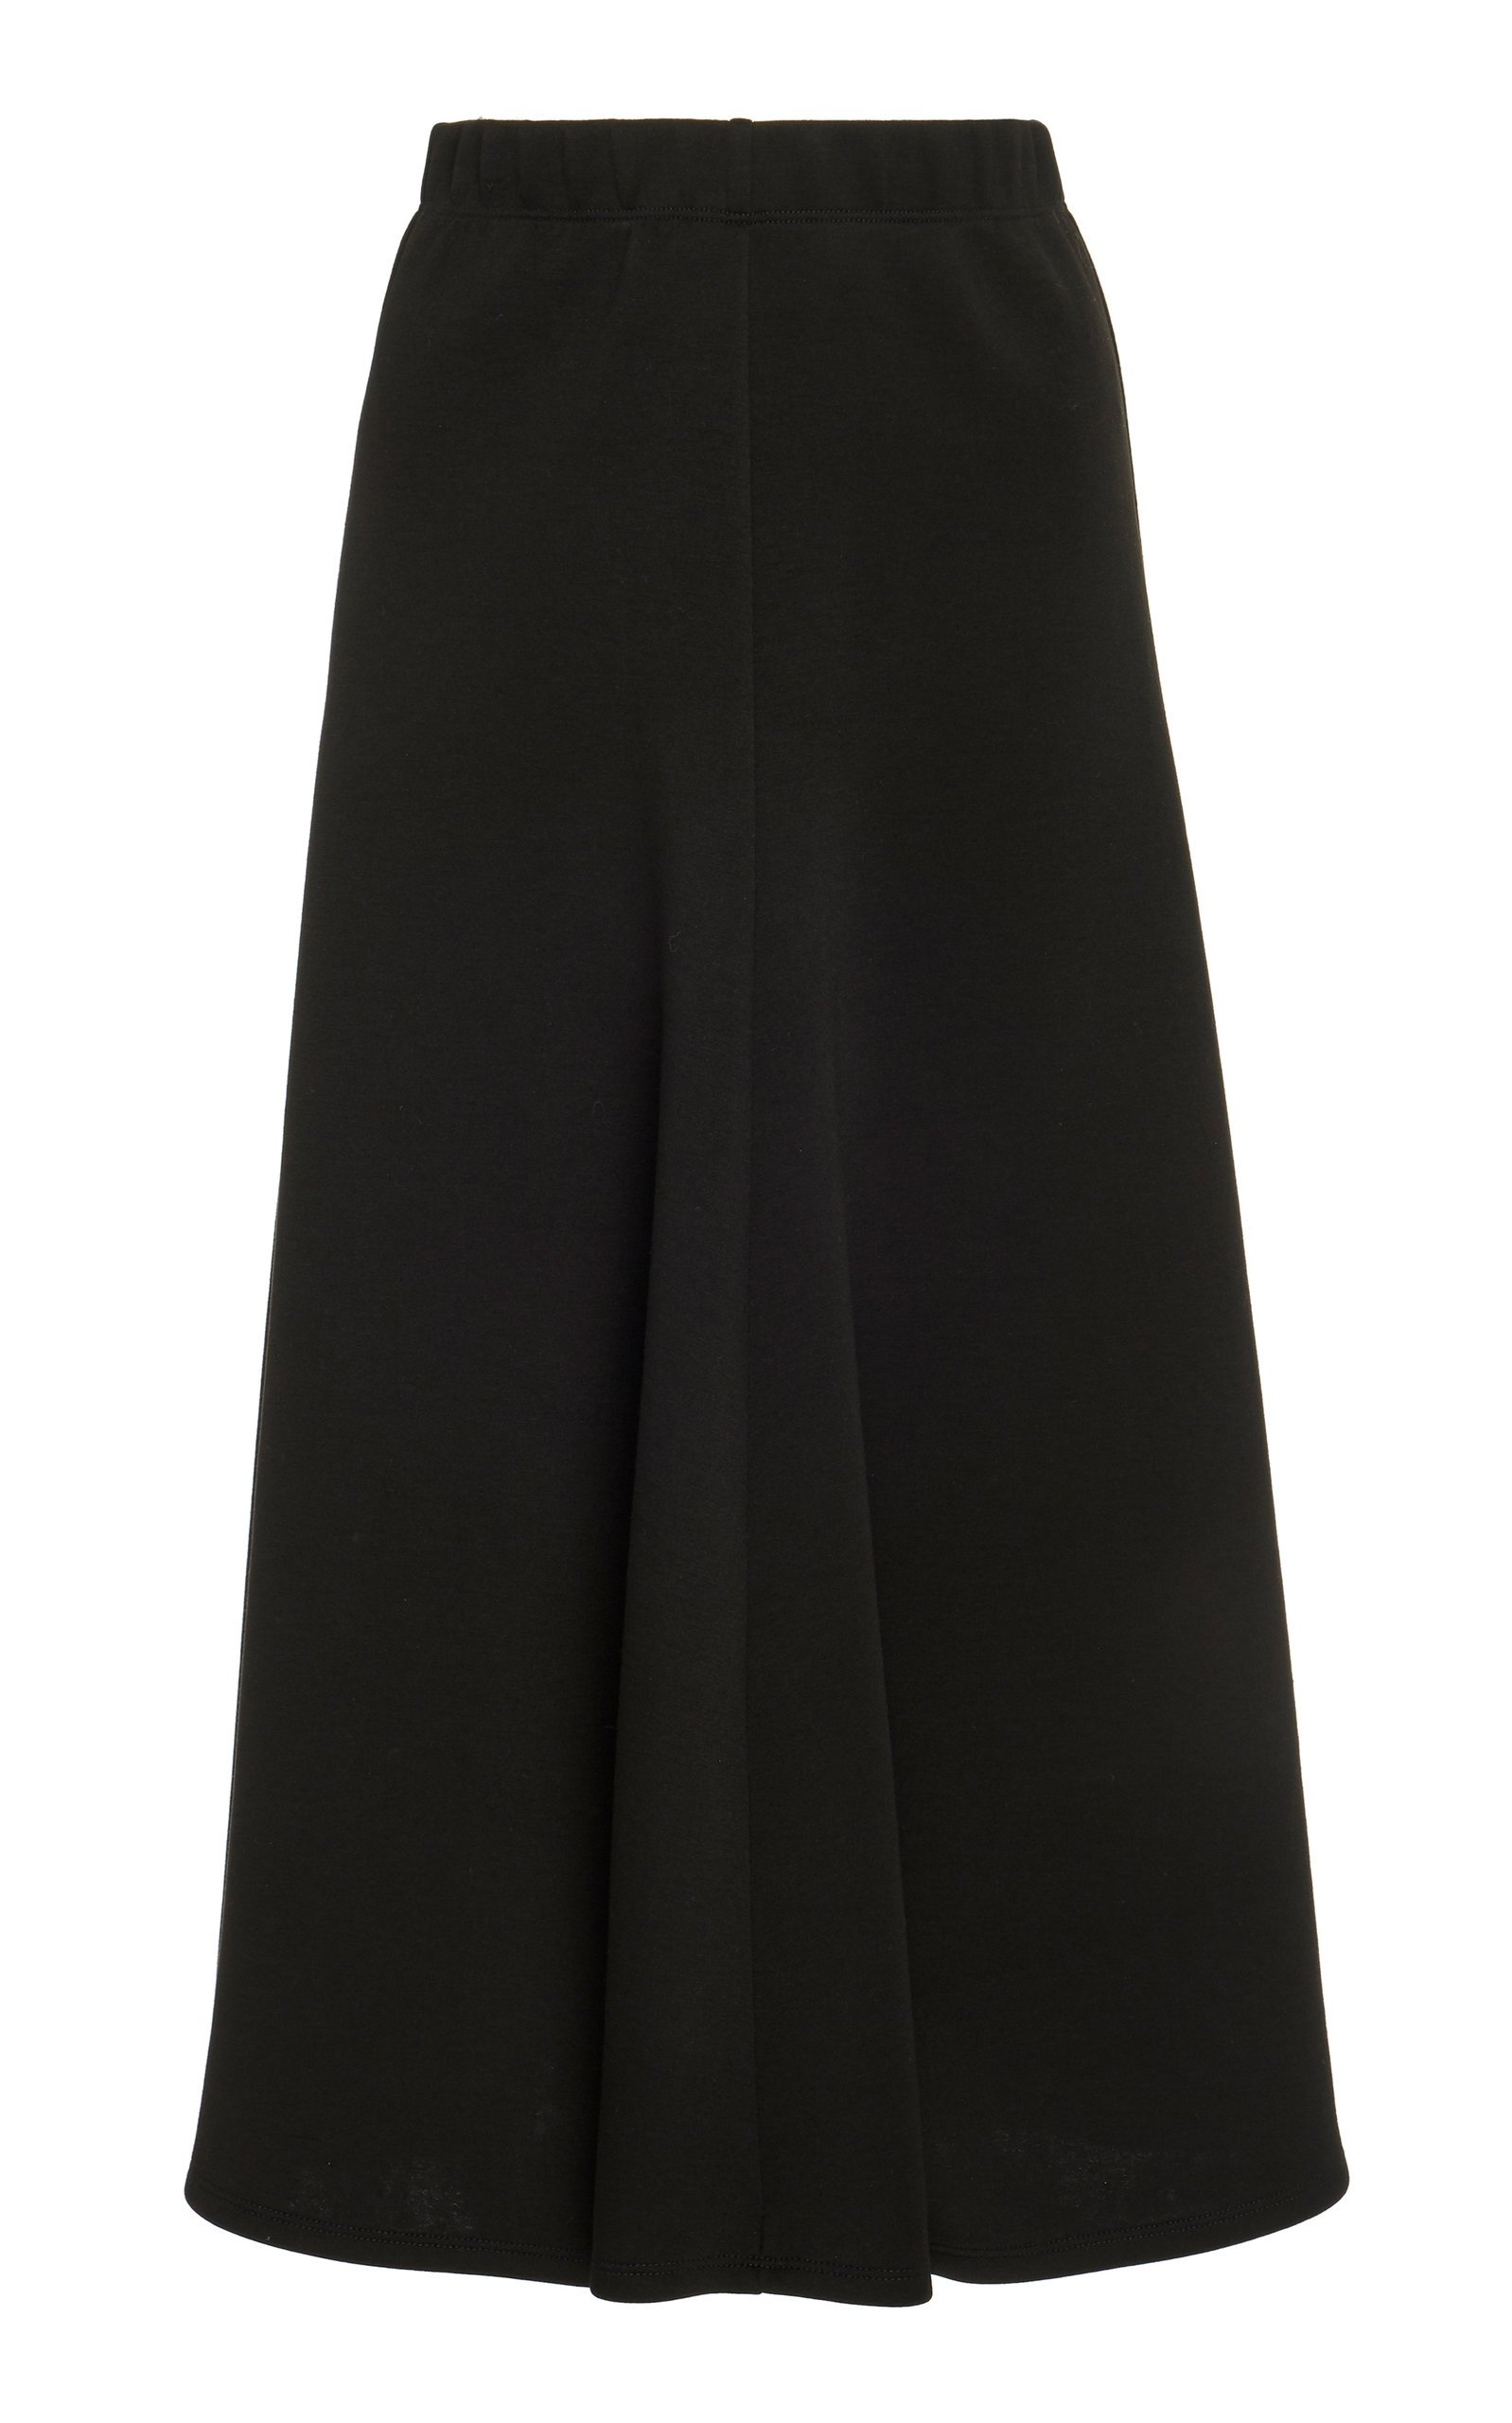 Beaufille Curie Neoprene A-Line Skirt